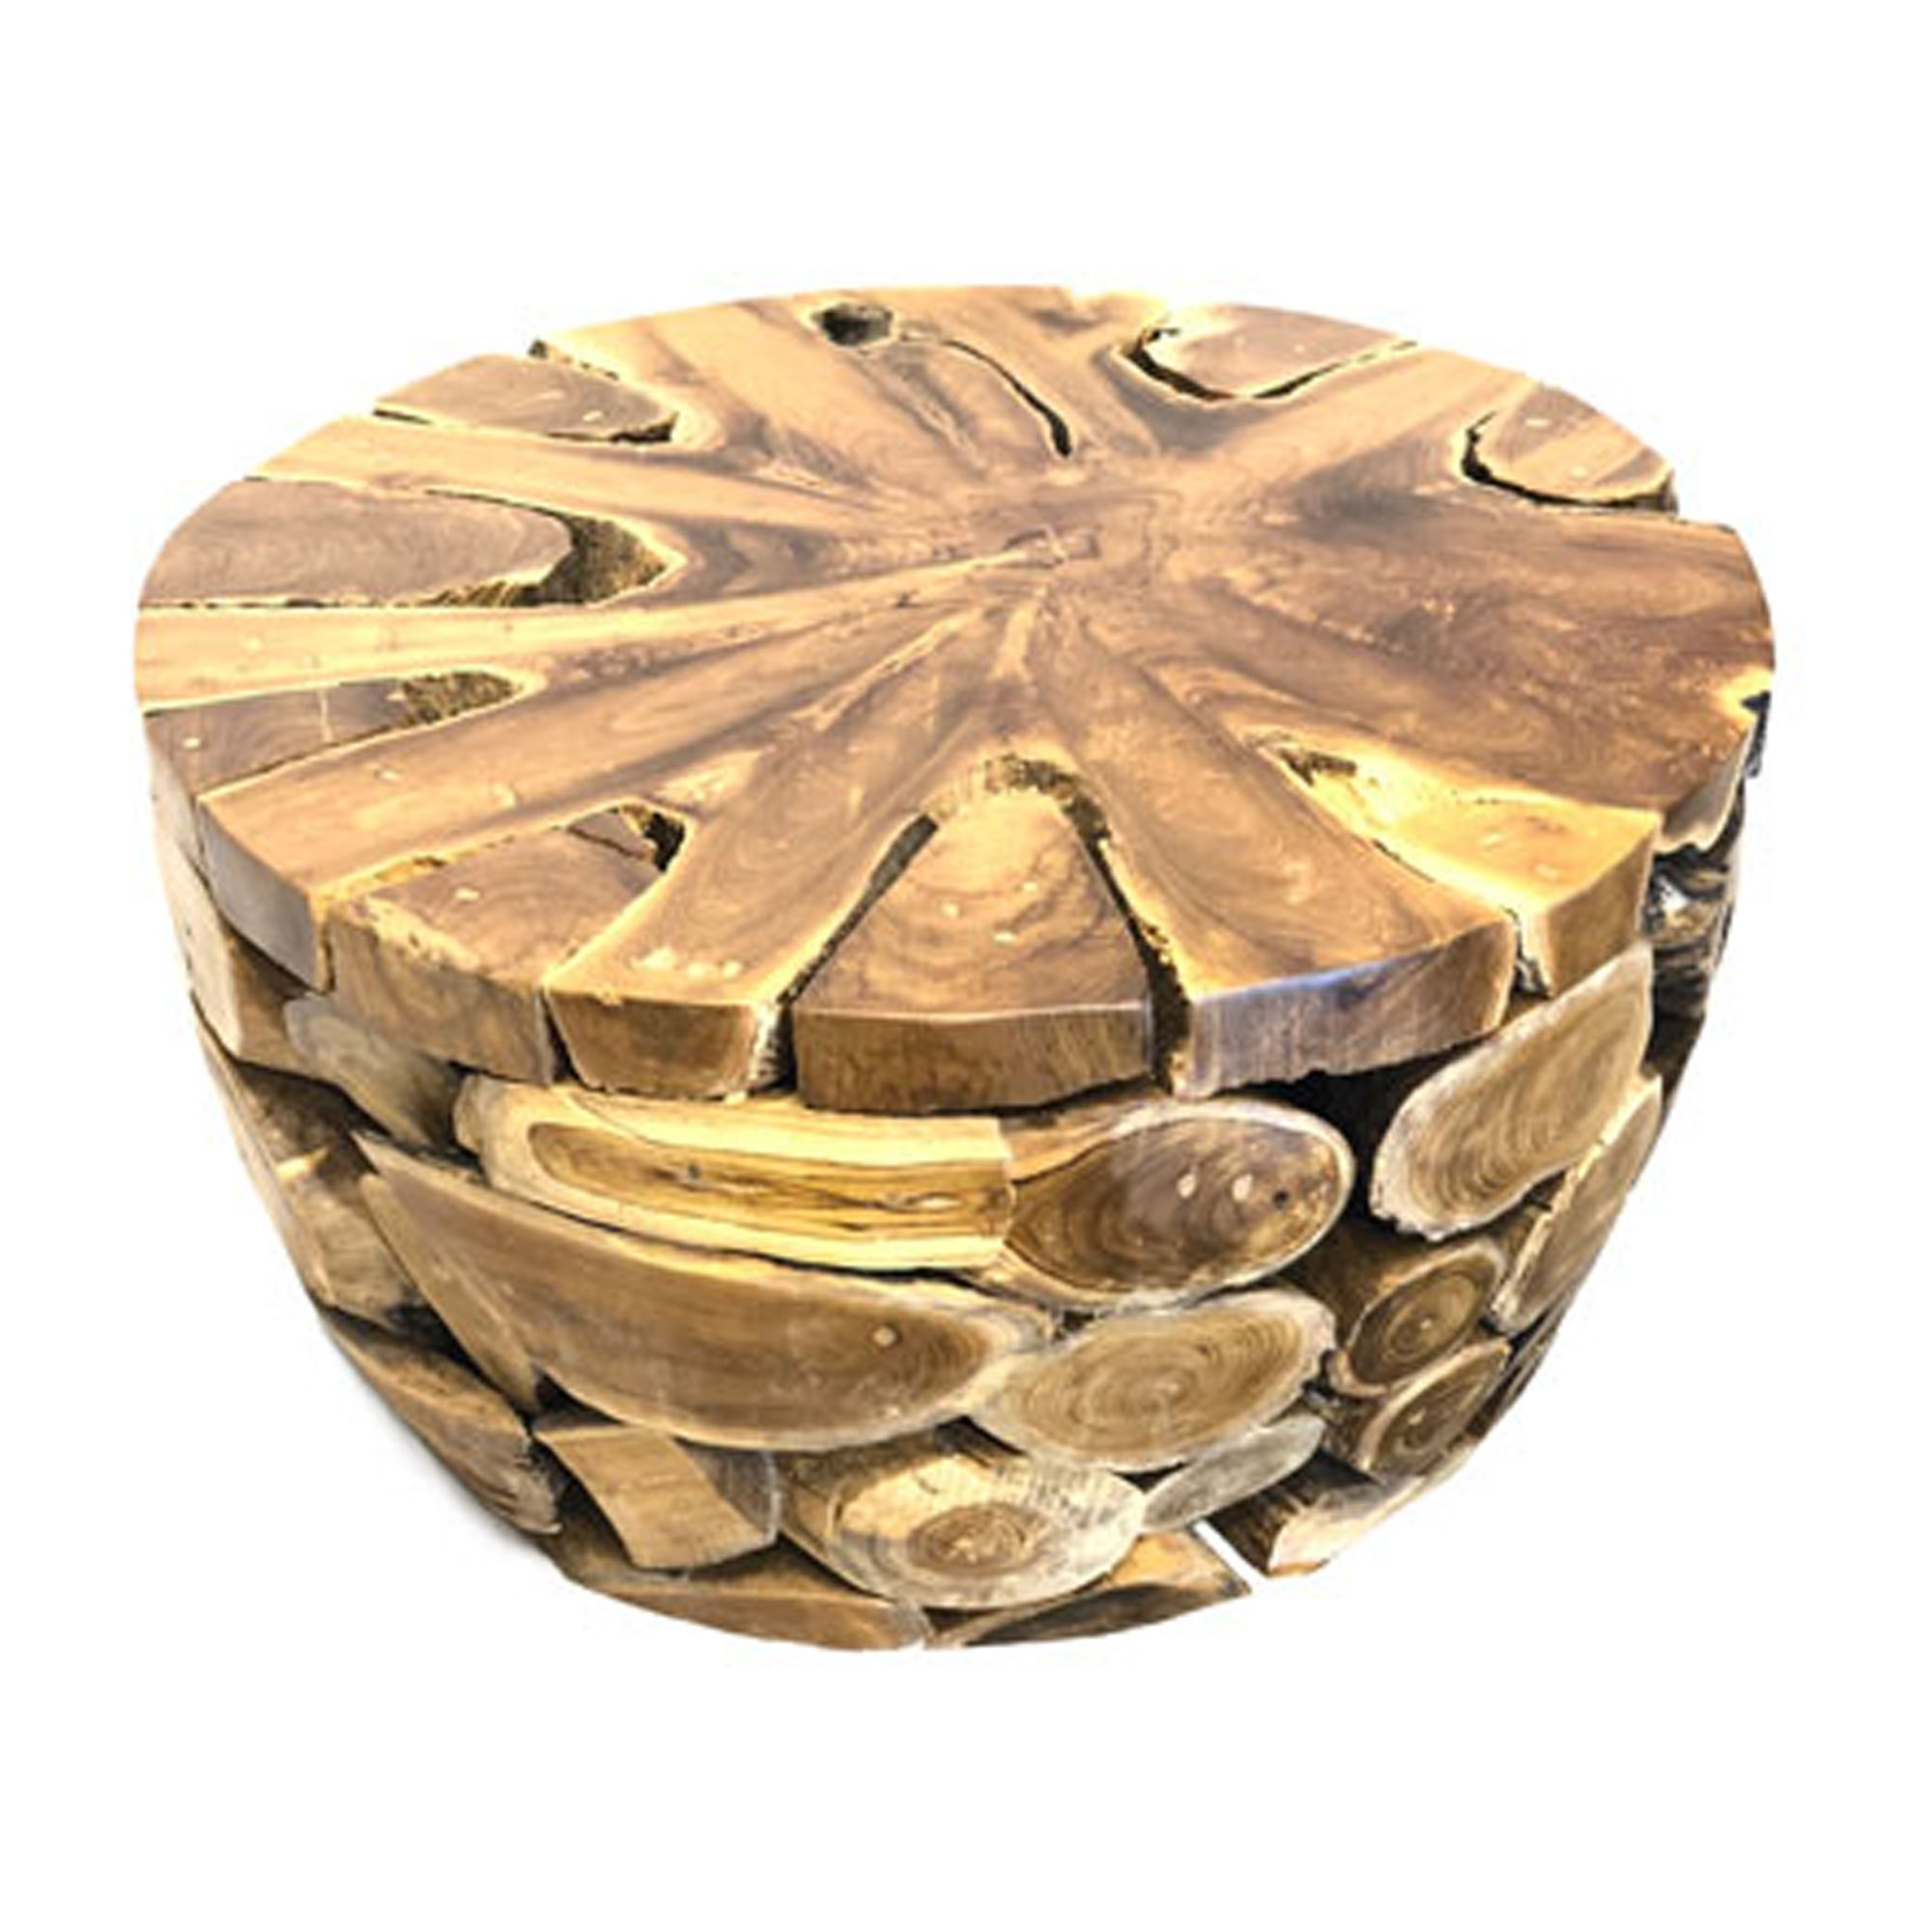 Teak Root Coffee Table Uk: Driftwood Coffee Table Teak Root Round Jati